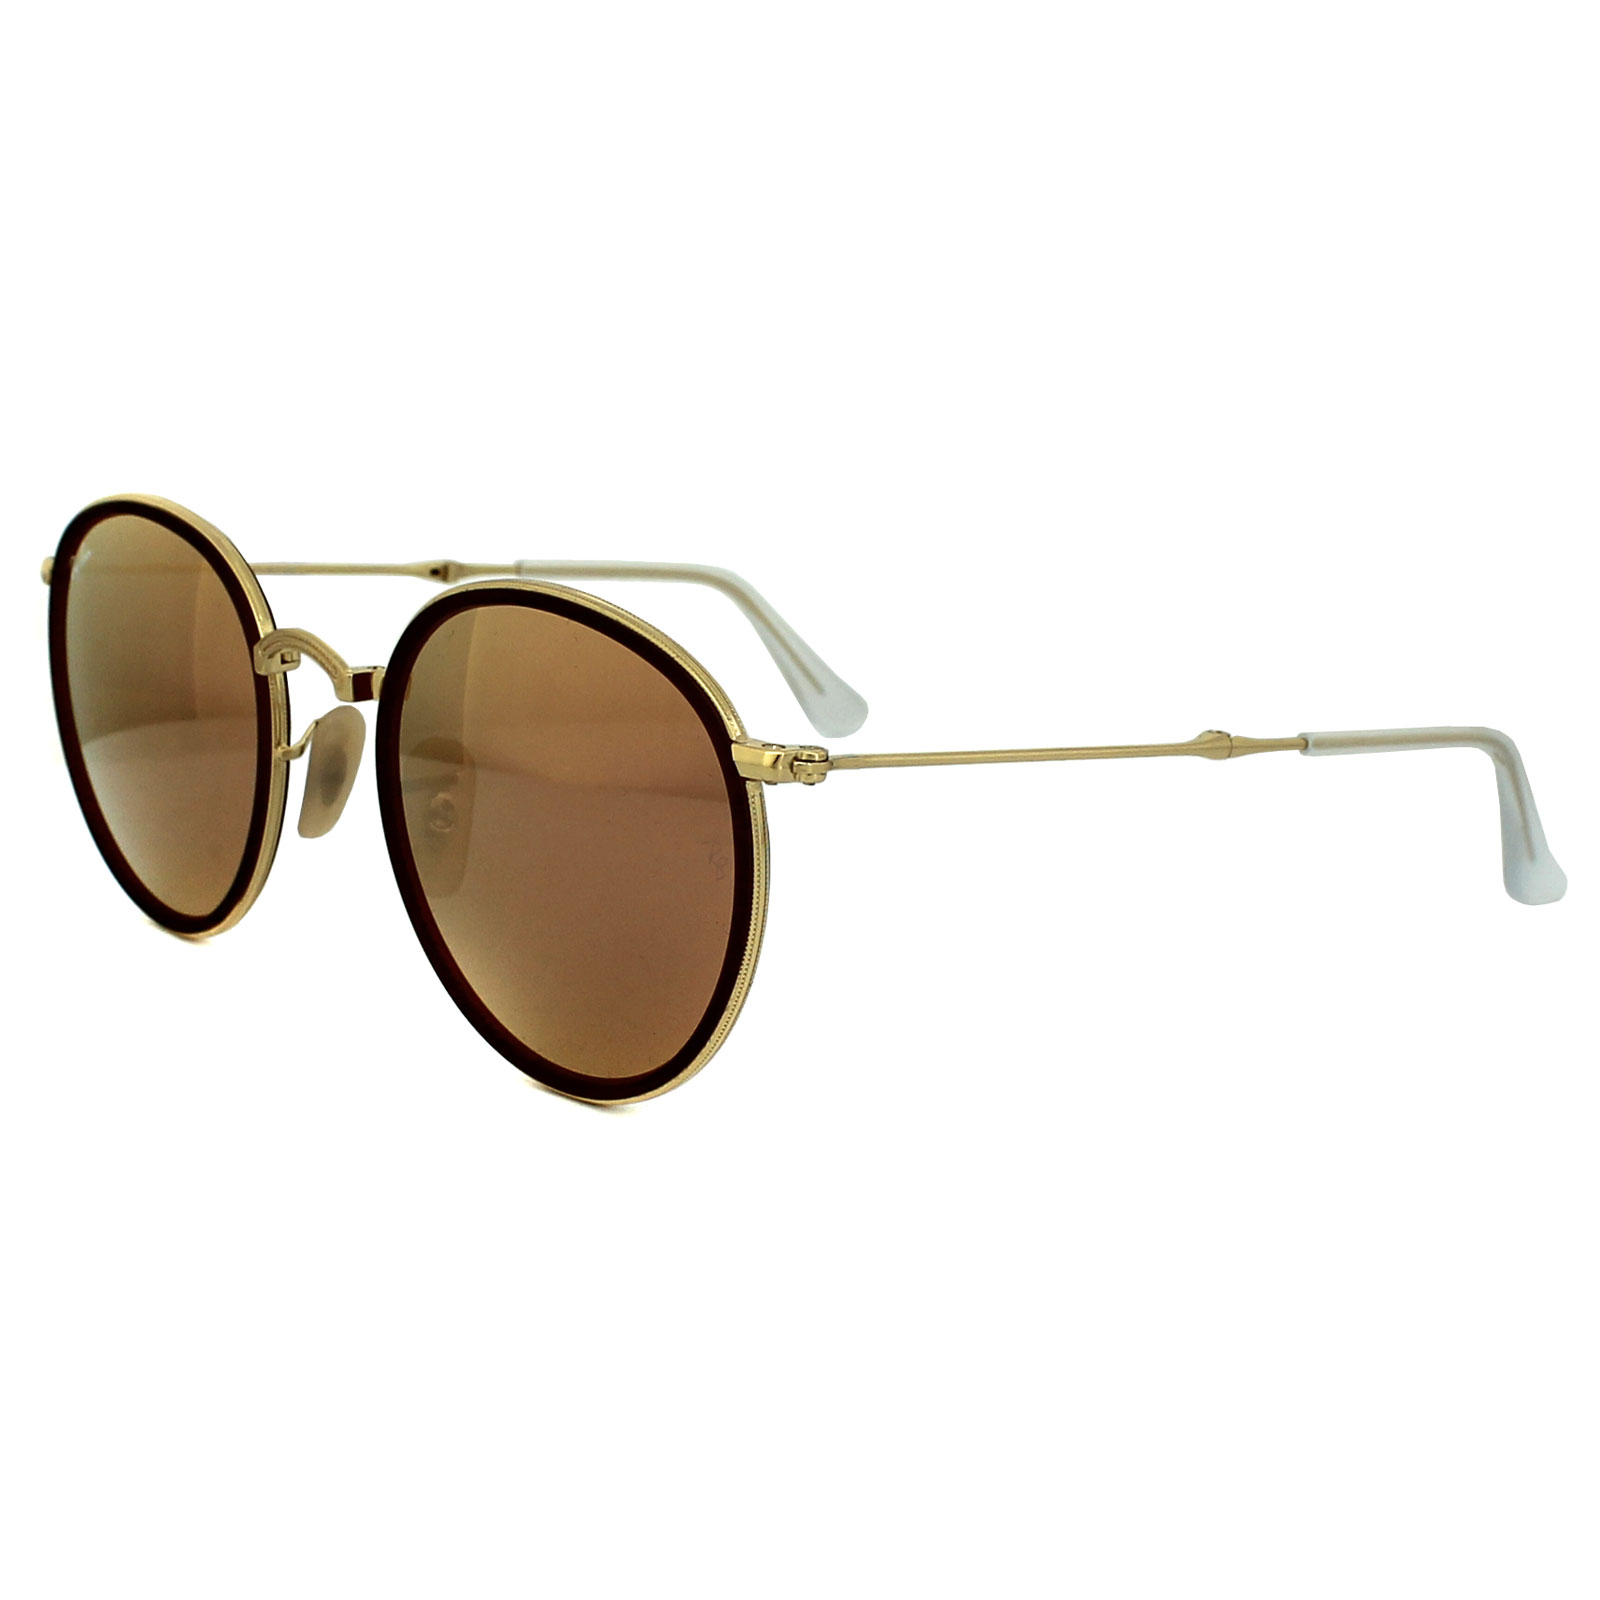 3d8b4b0abca4b Sentinel Ray-Ban Sunglasses Round Folding 3517 001 Z2 Gold Copper Mirror